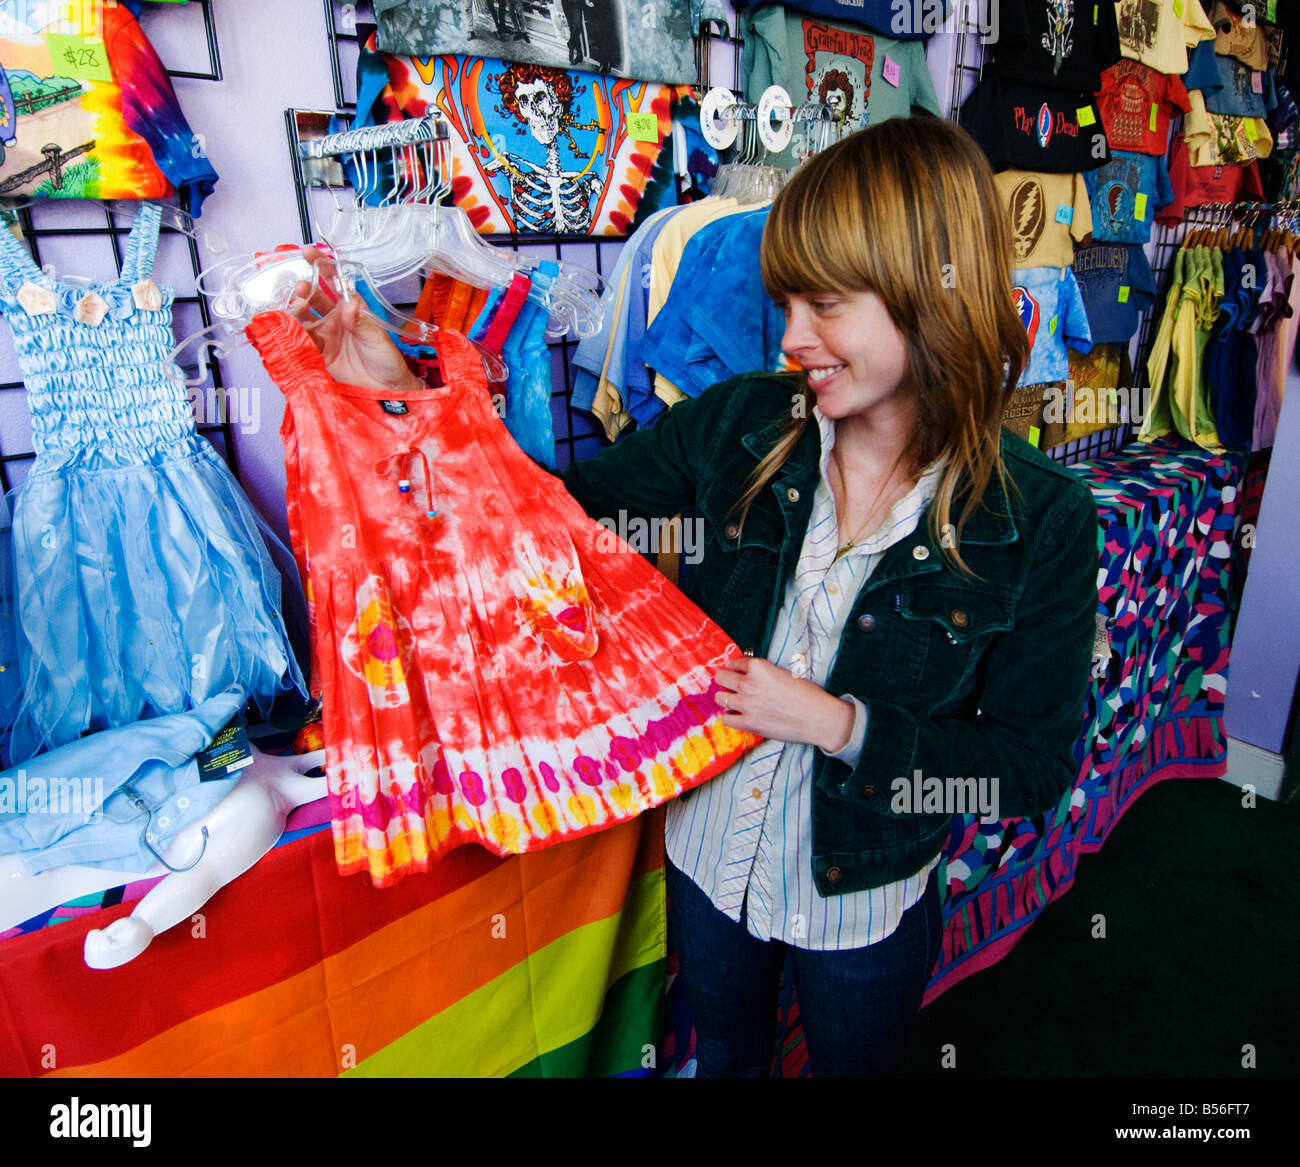 California San Francisco Shop known as Positively Haight Street selling tie dyed clothing in the Haight Ashbury. - Stock Image